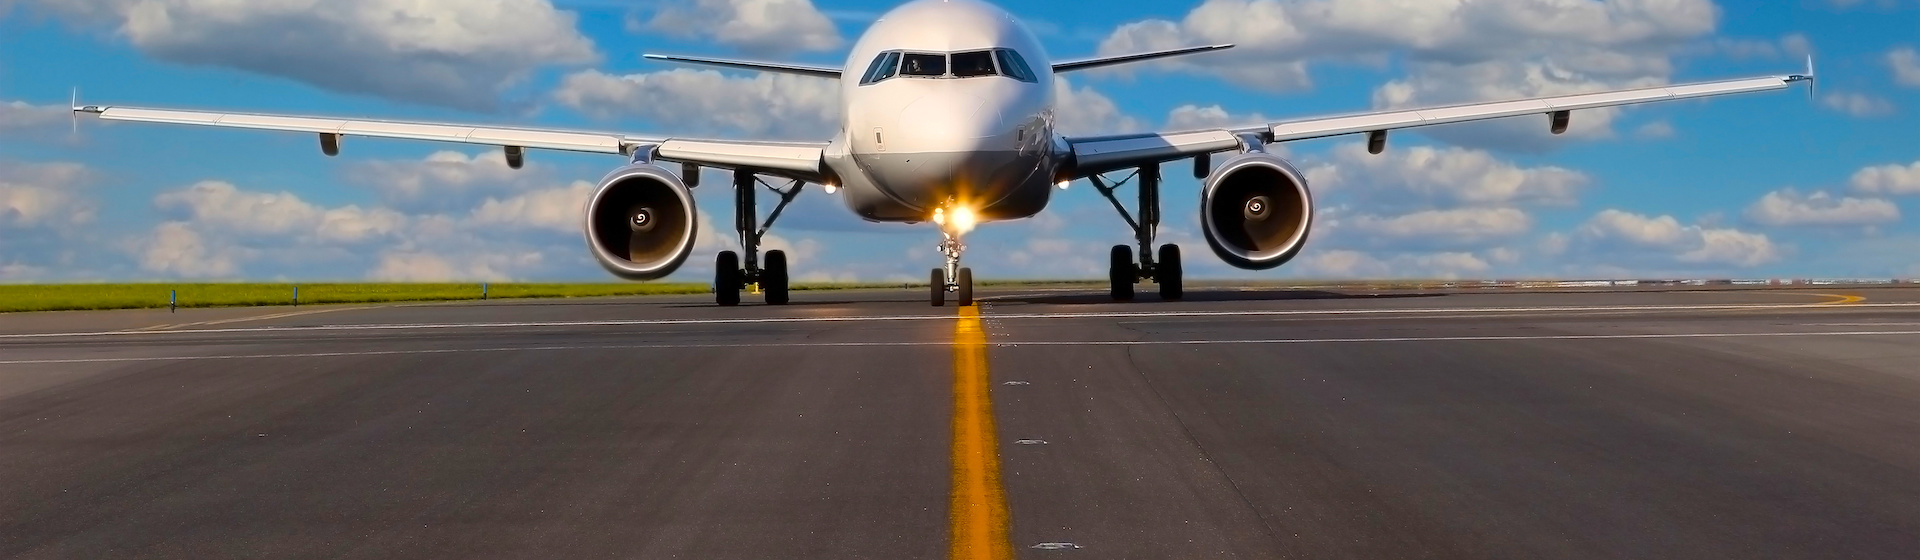 Plane on tarmac